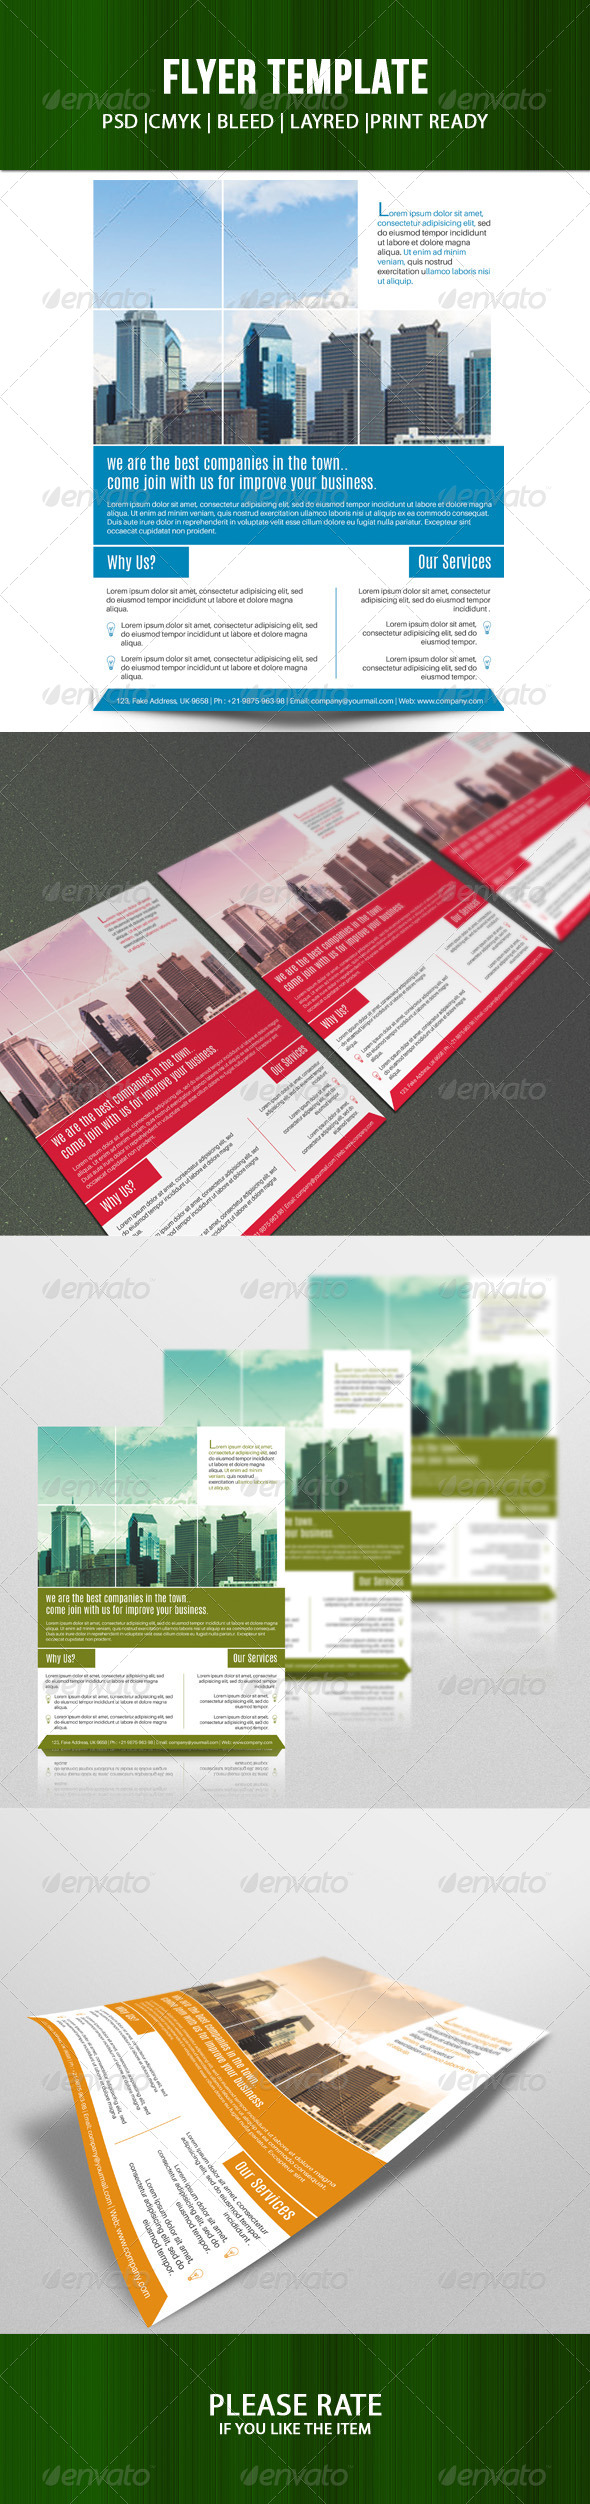 Business Flyer tempalte-V36